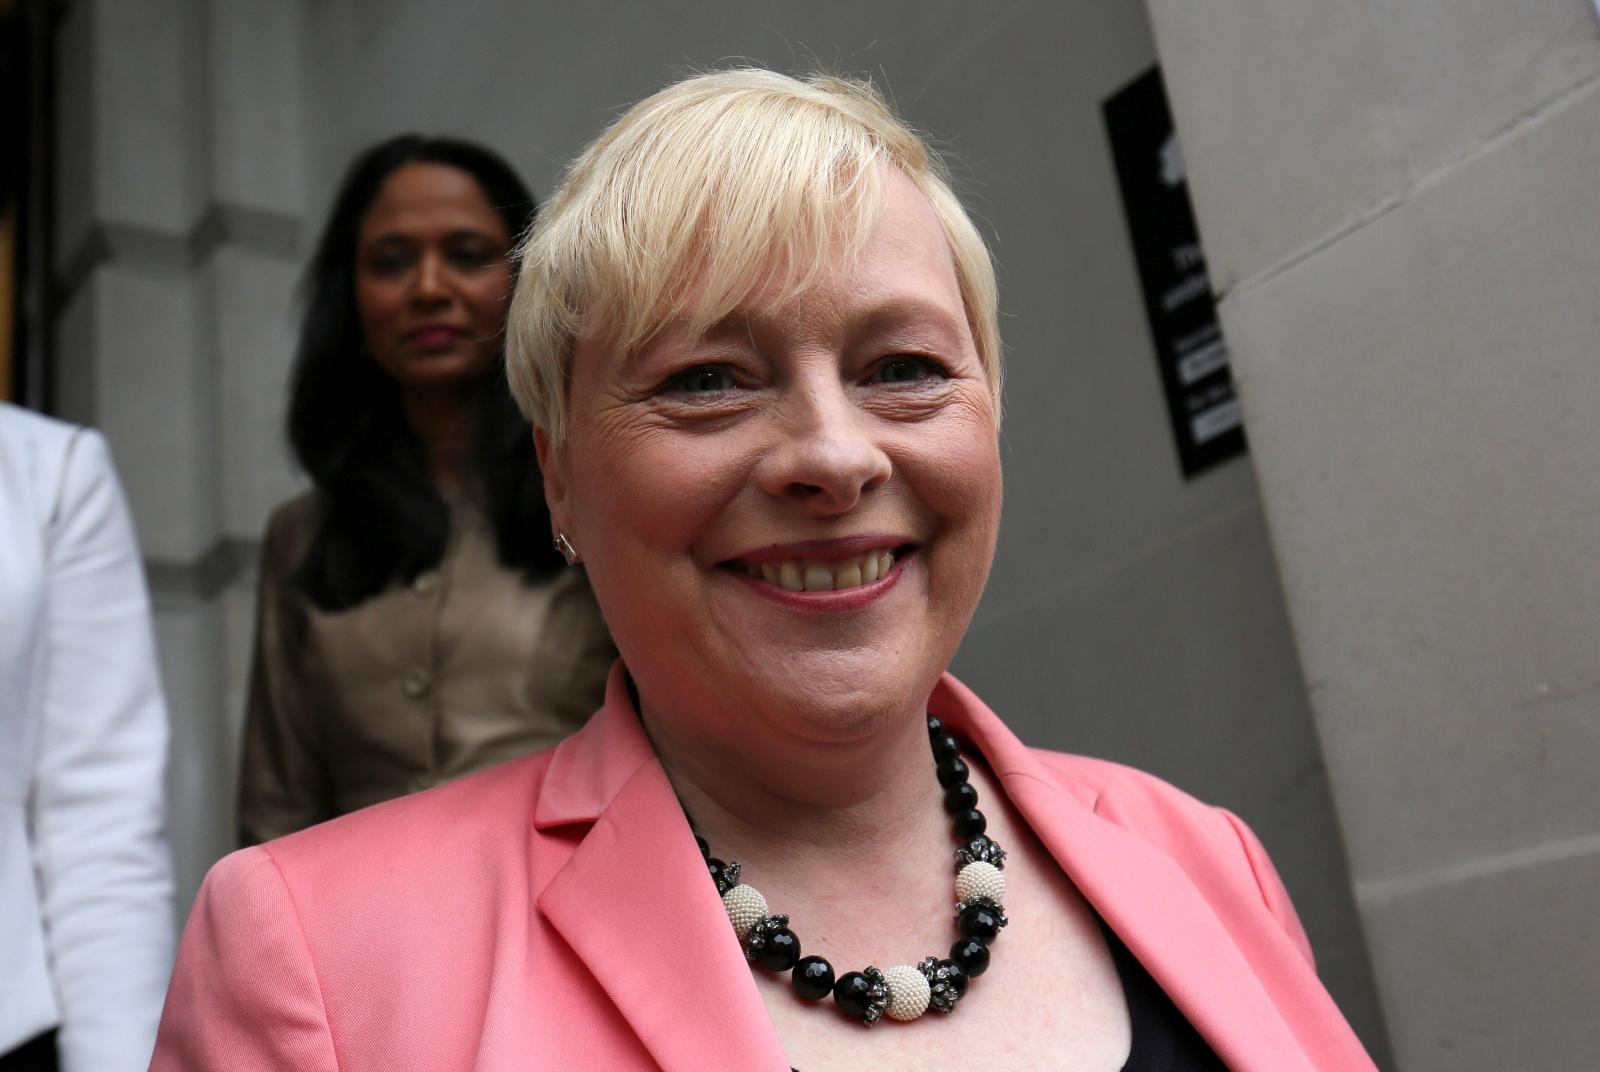 Angela Eagle launches leadership bid